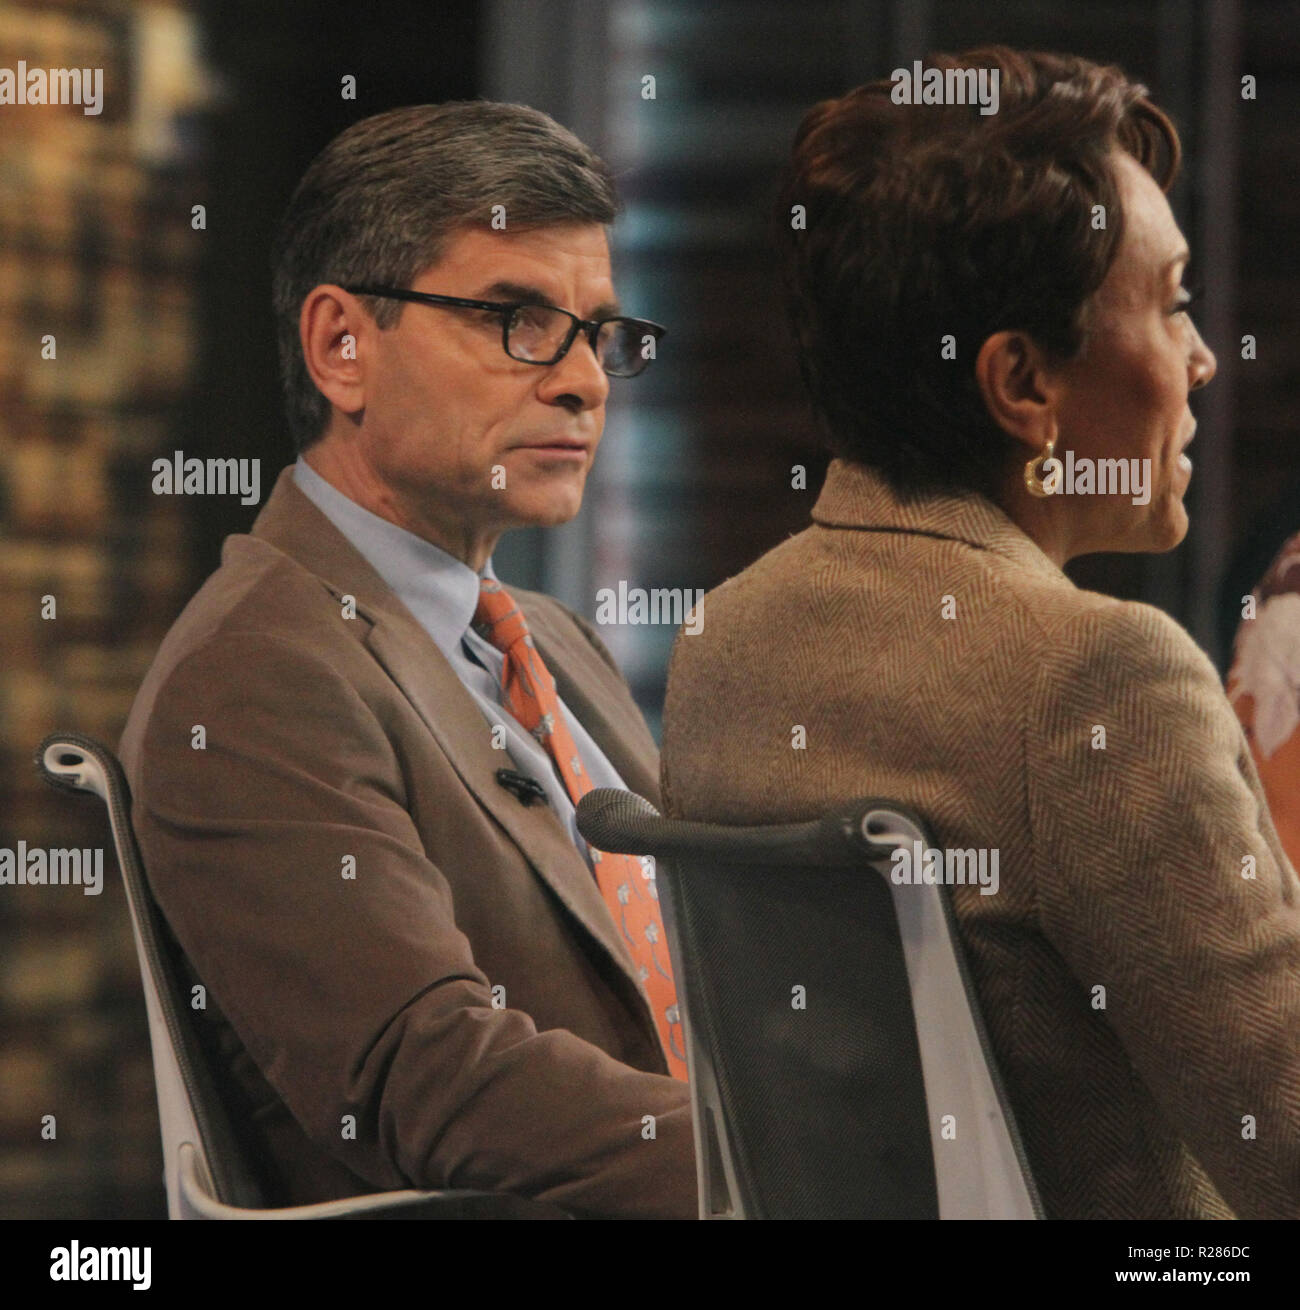 November 16, 2018 George Stephanopoulos host of Good Morning America in New York. November 16, 2018 Credit:RW/MediaPunch - Stock Image